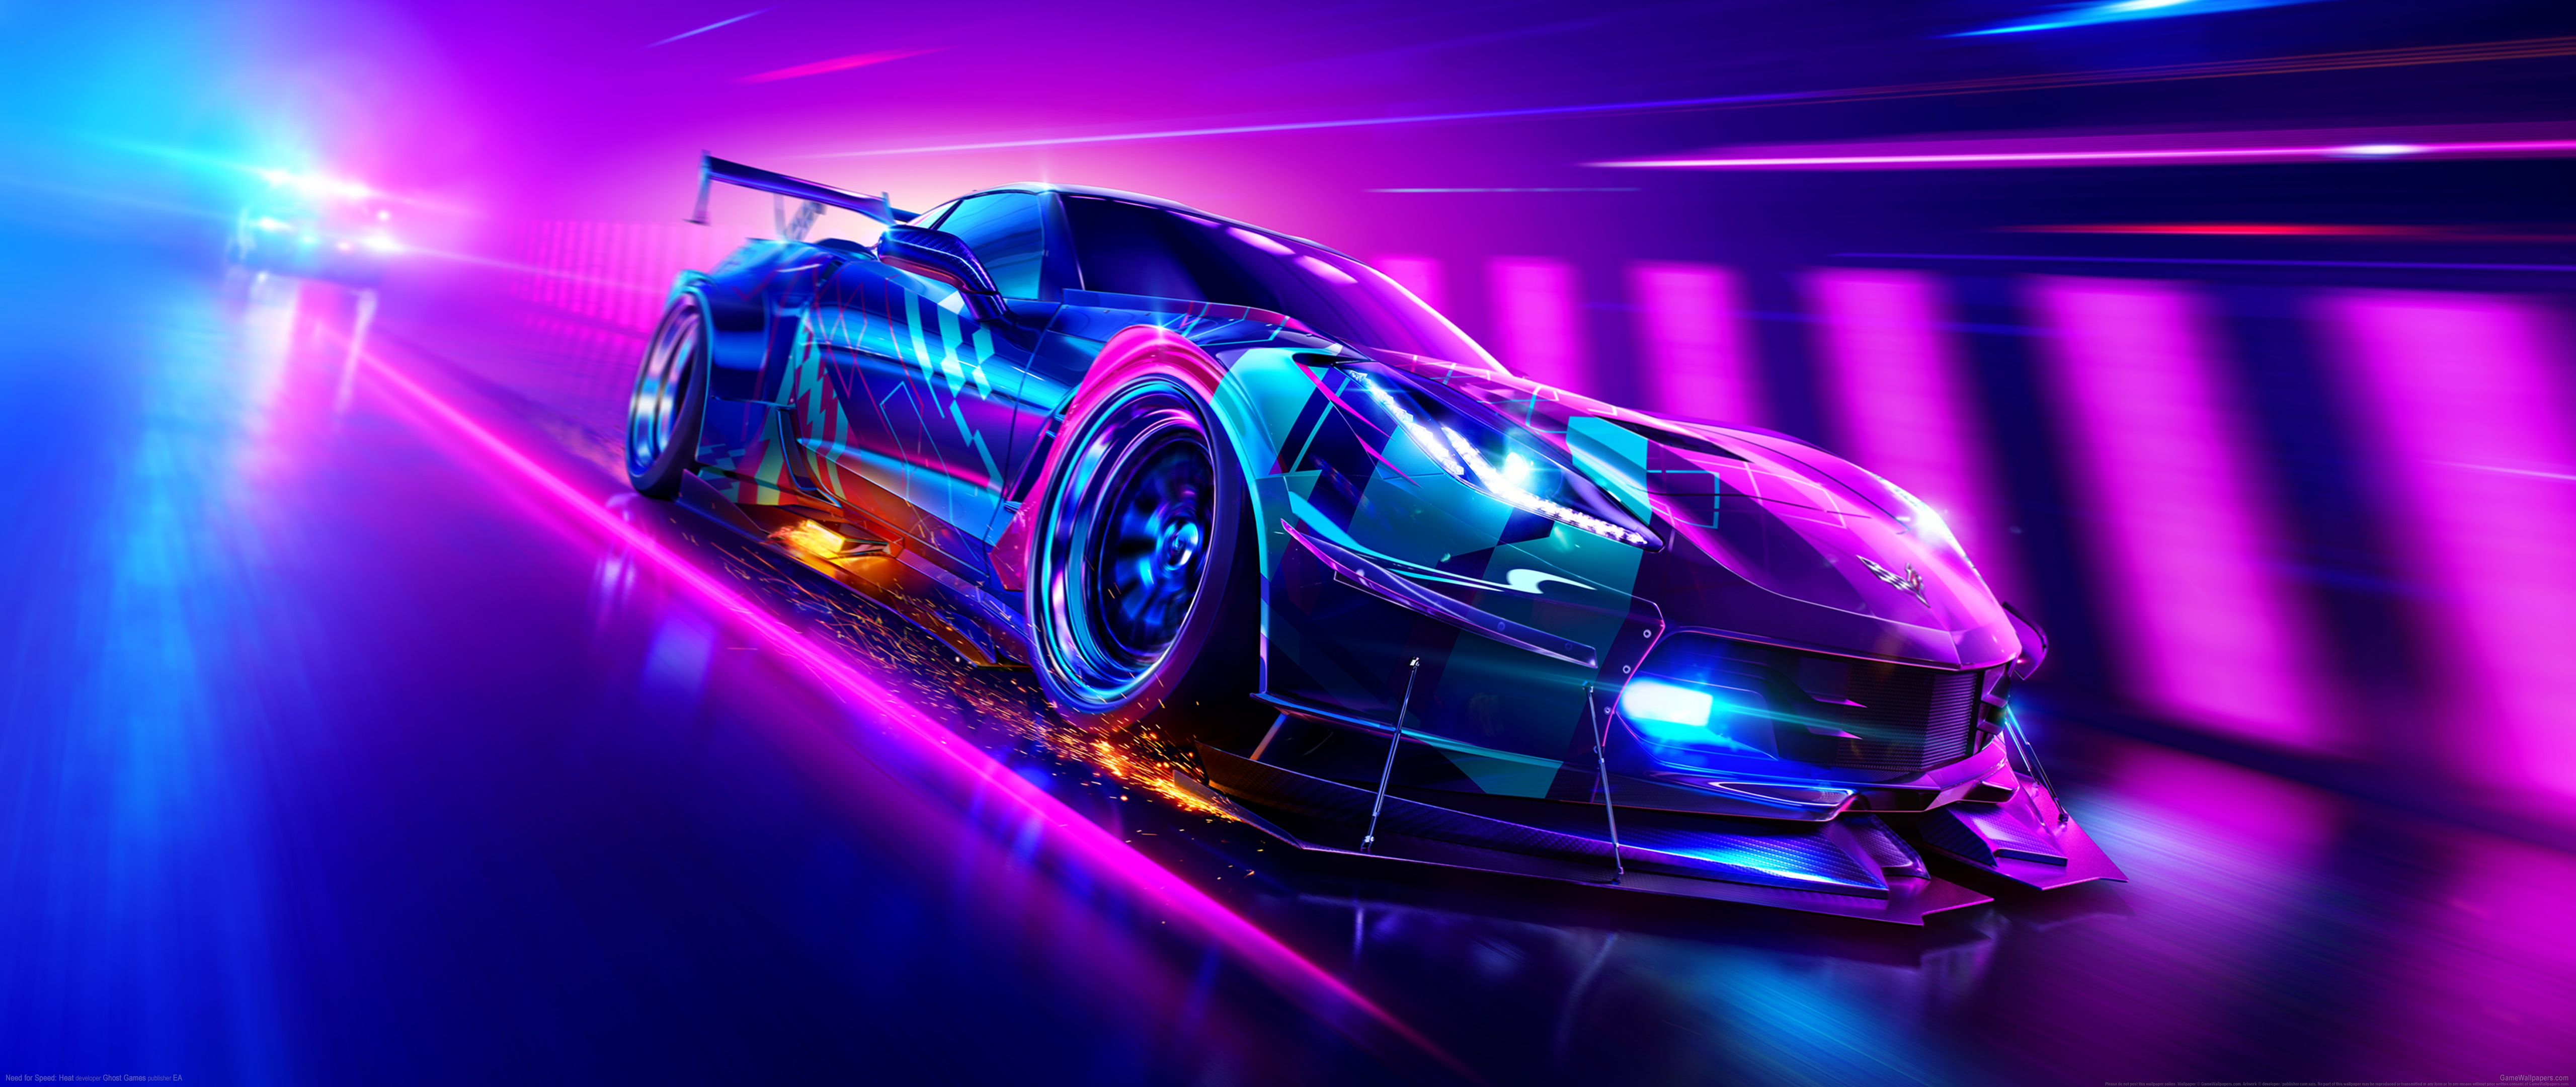 Need for Speed: Heat 5120x2160 wallpaper or background 03